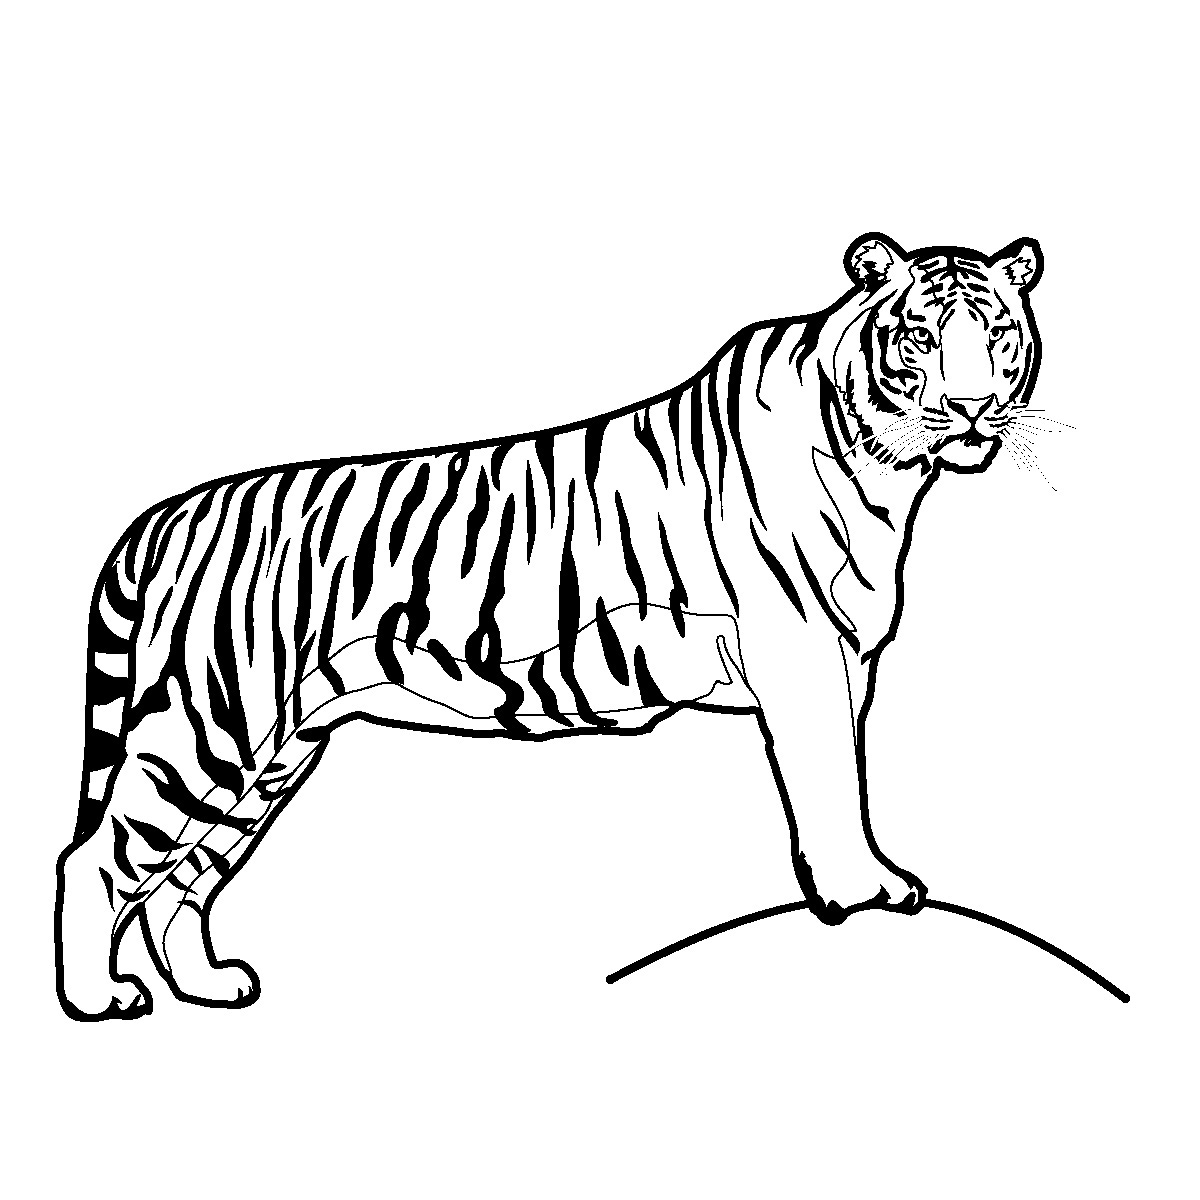 Tiger  black and white tiger black and white clipart 4